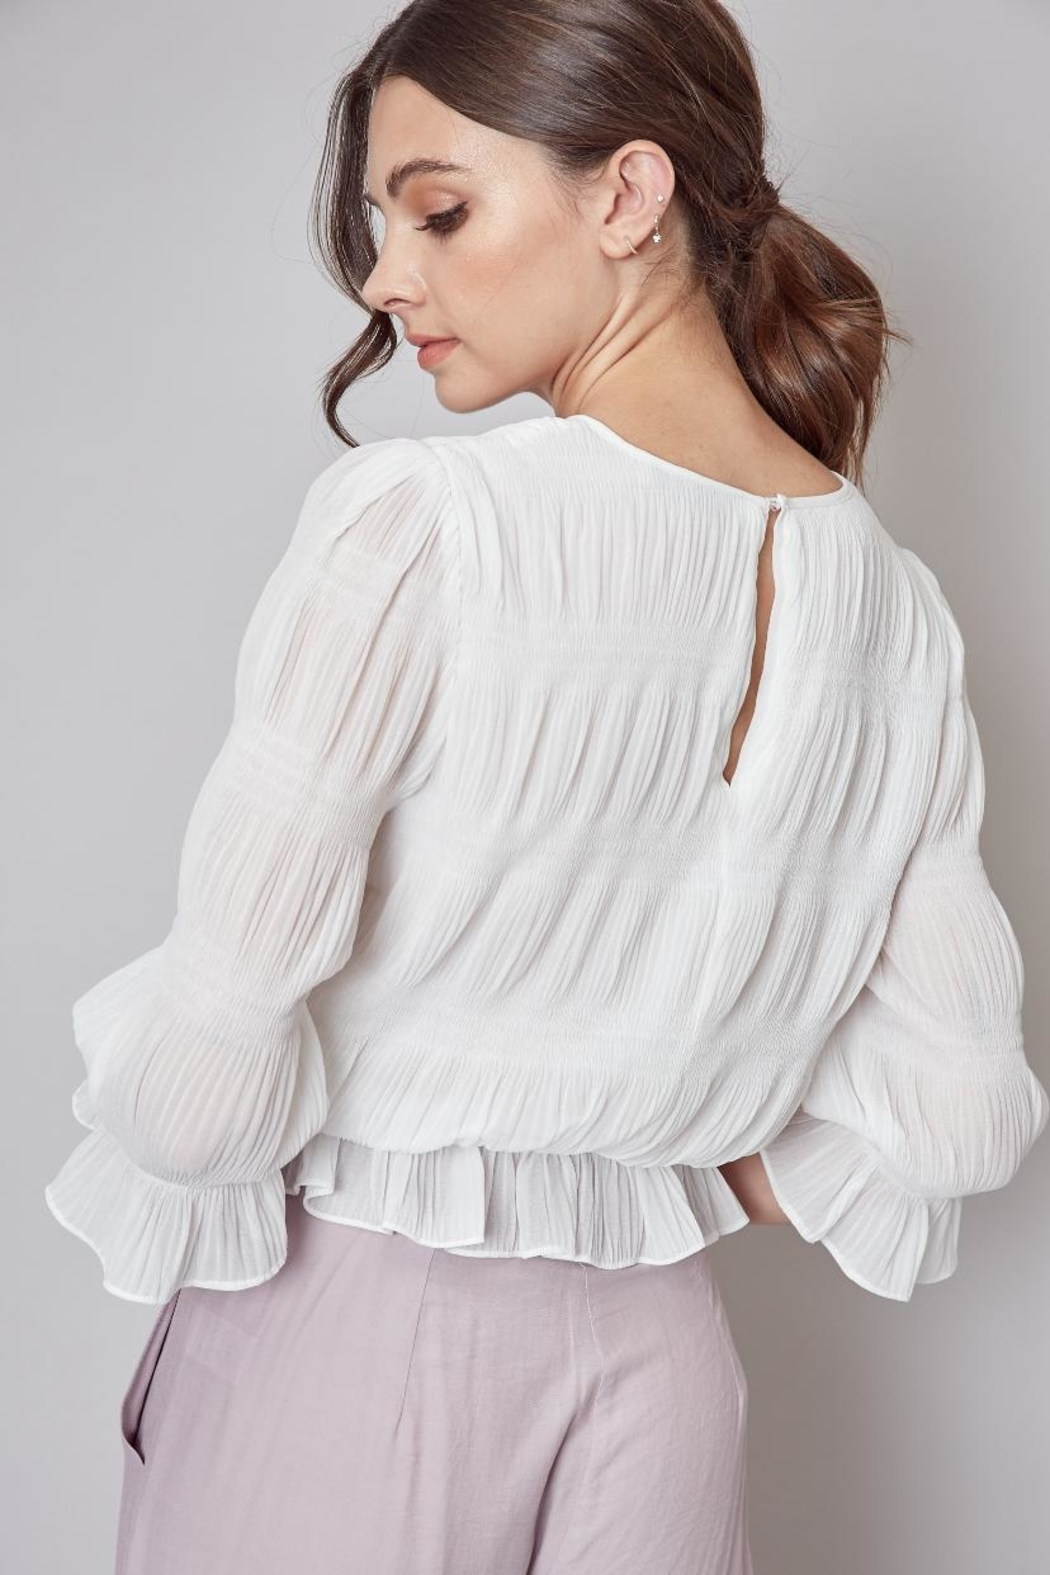 Do & Be Off-White Pleated Top - Back Cropped Image